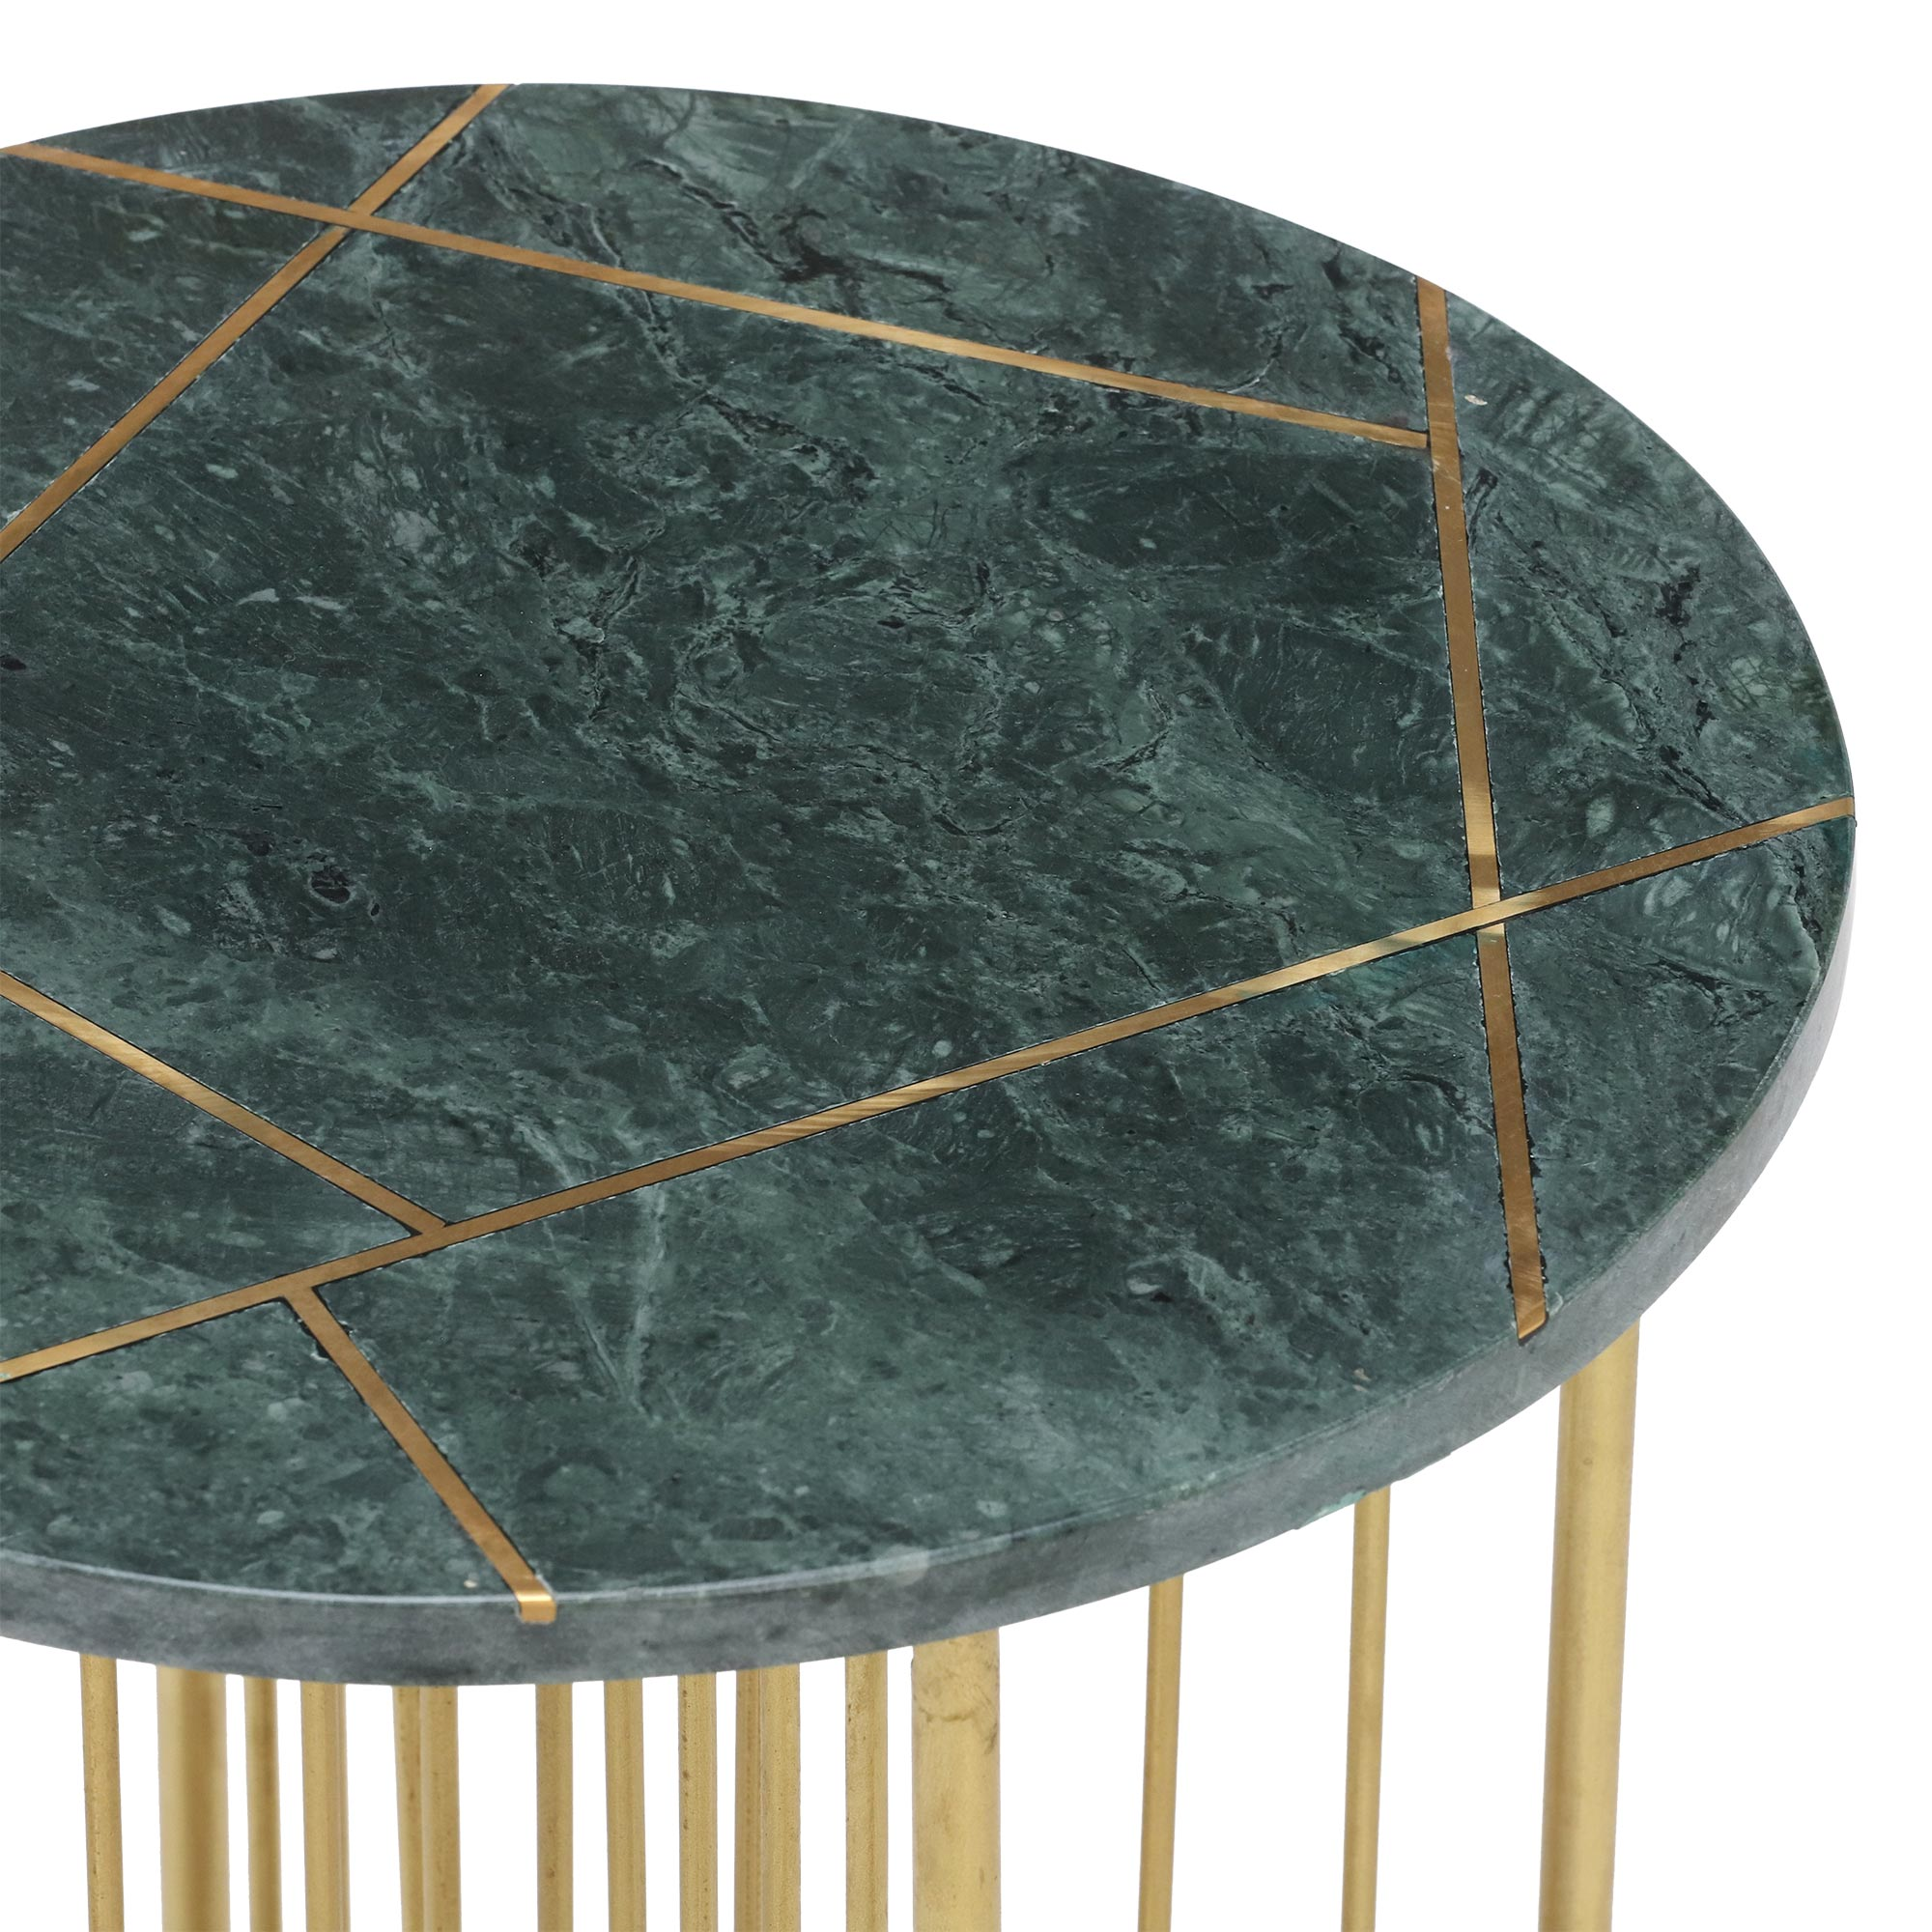 INSIGNIA LAMP TABLE - MARBLE AND BRASS INLAY DETAIL